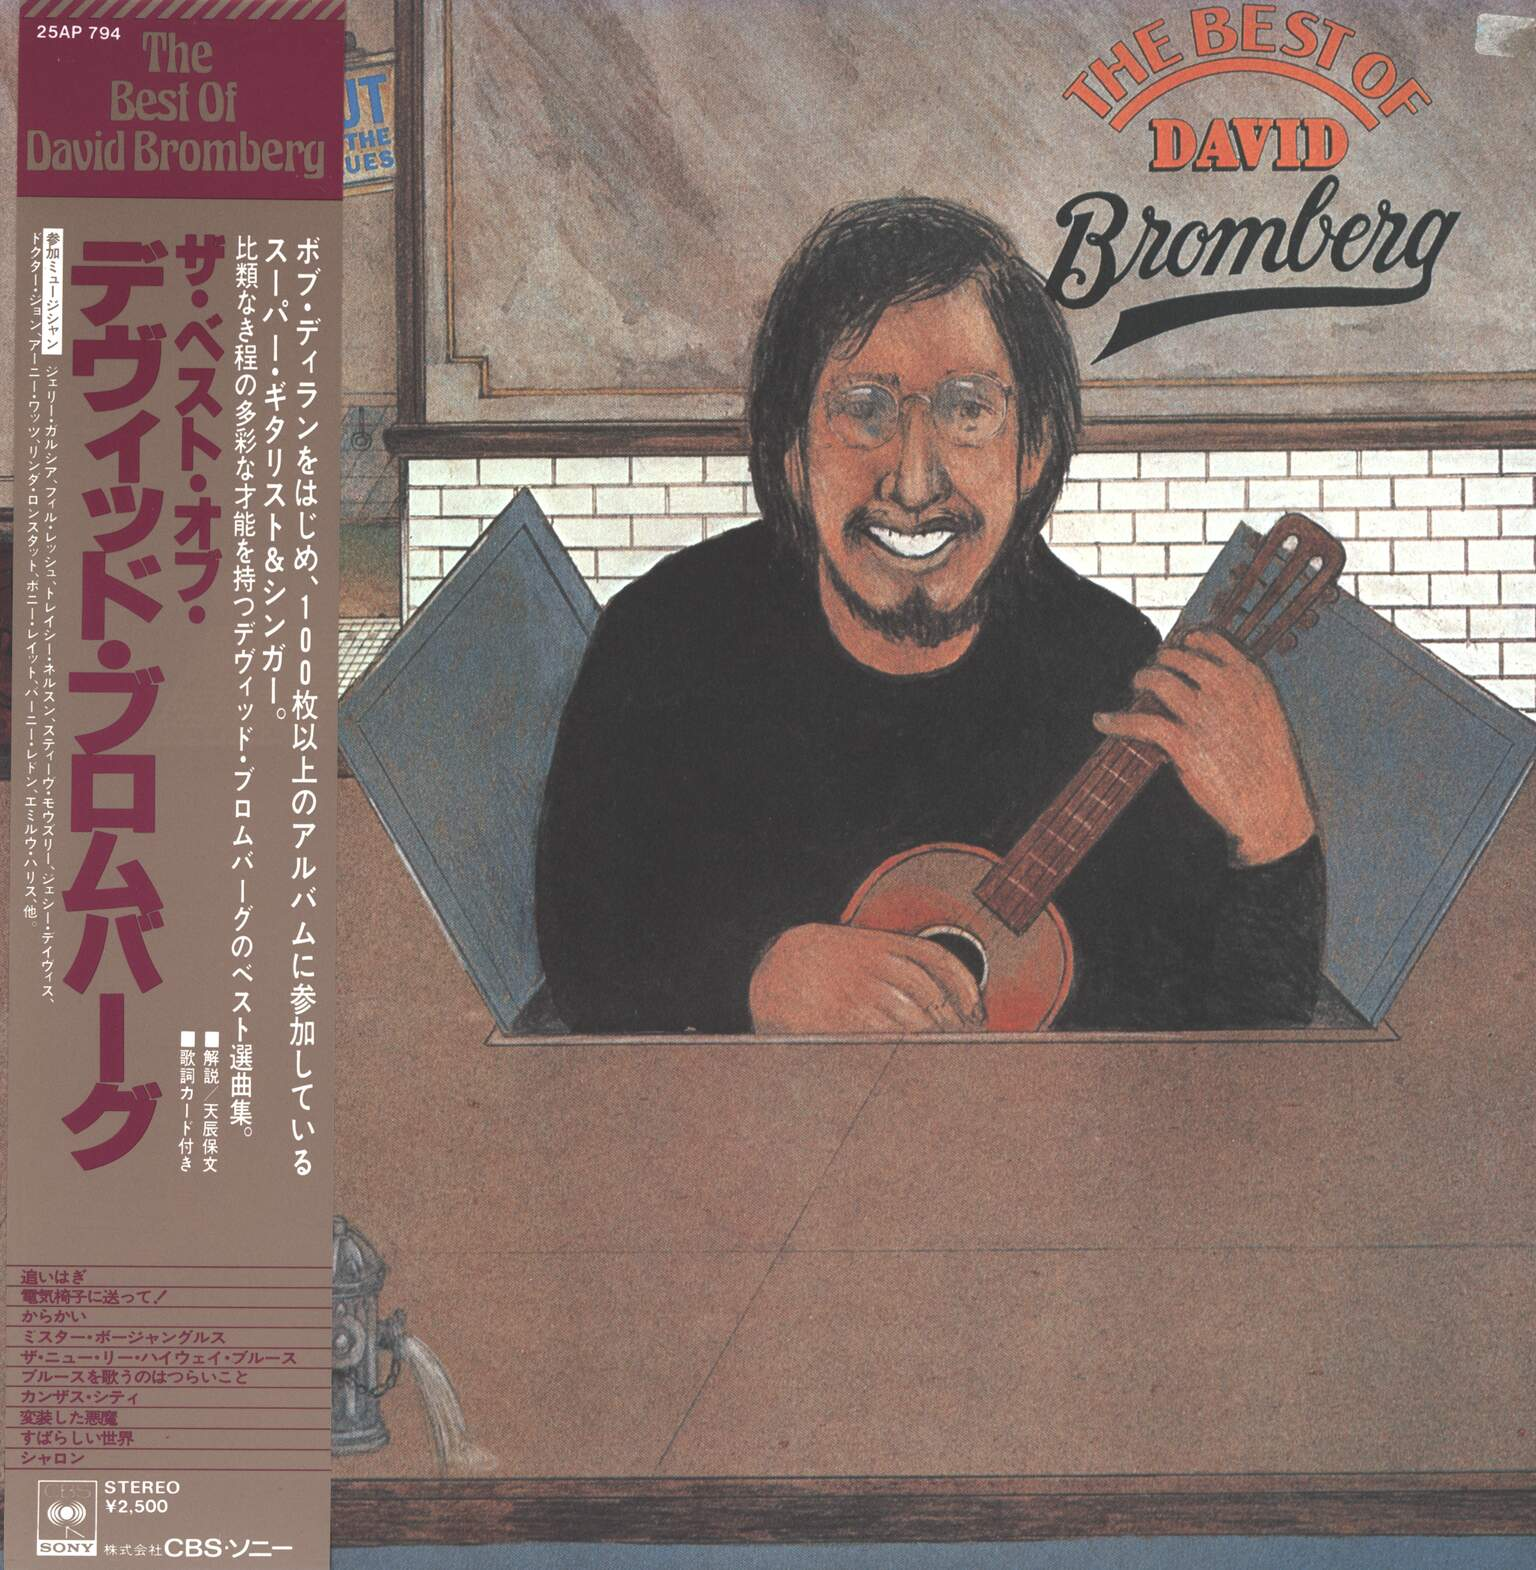 David Bromberg: Out Of The Blues: The Best Of David Bromberg, 1×LP (Vinyl)